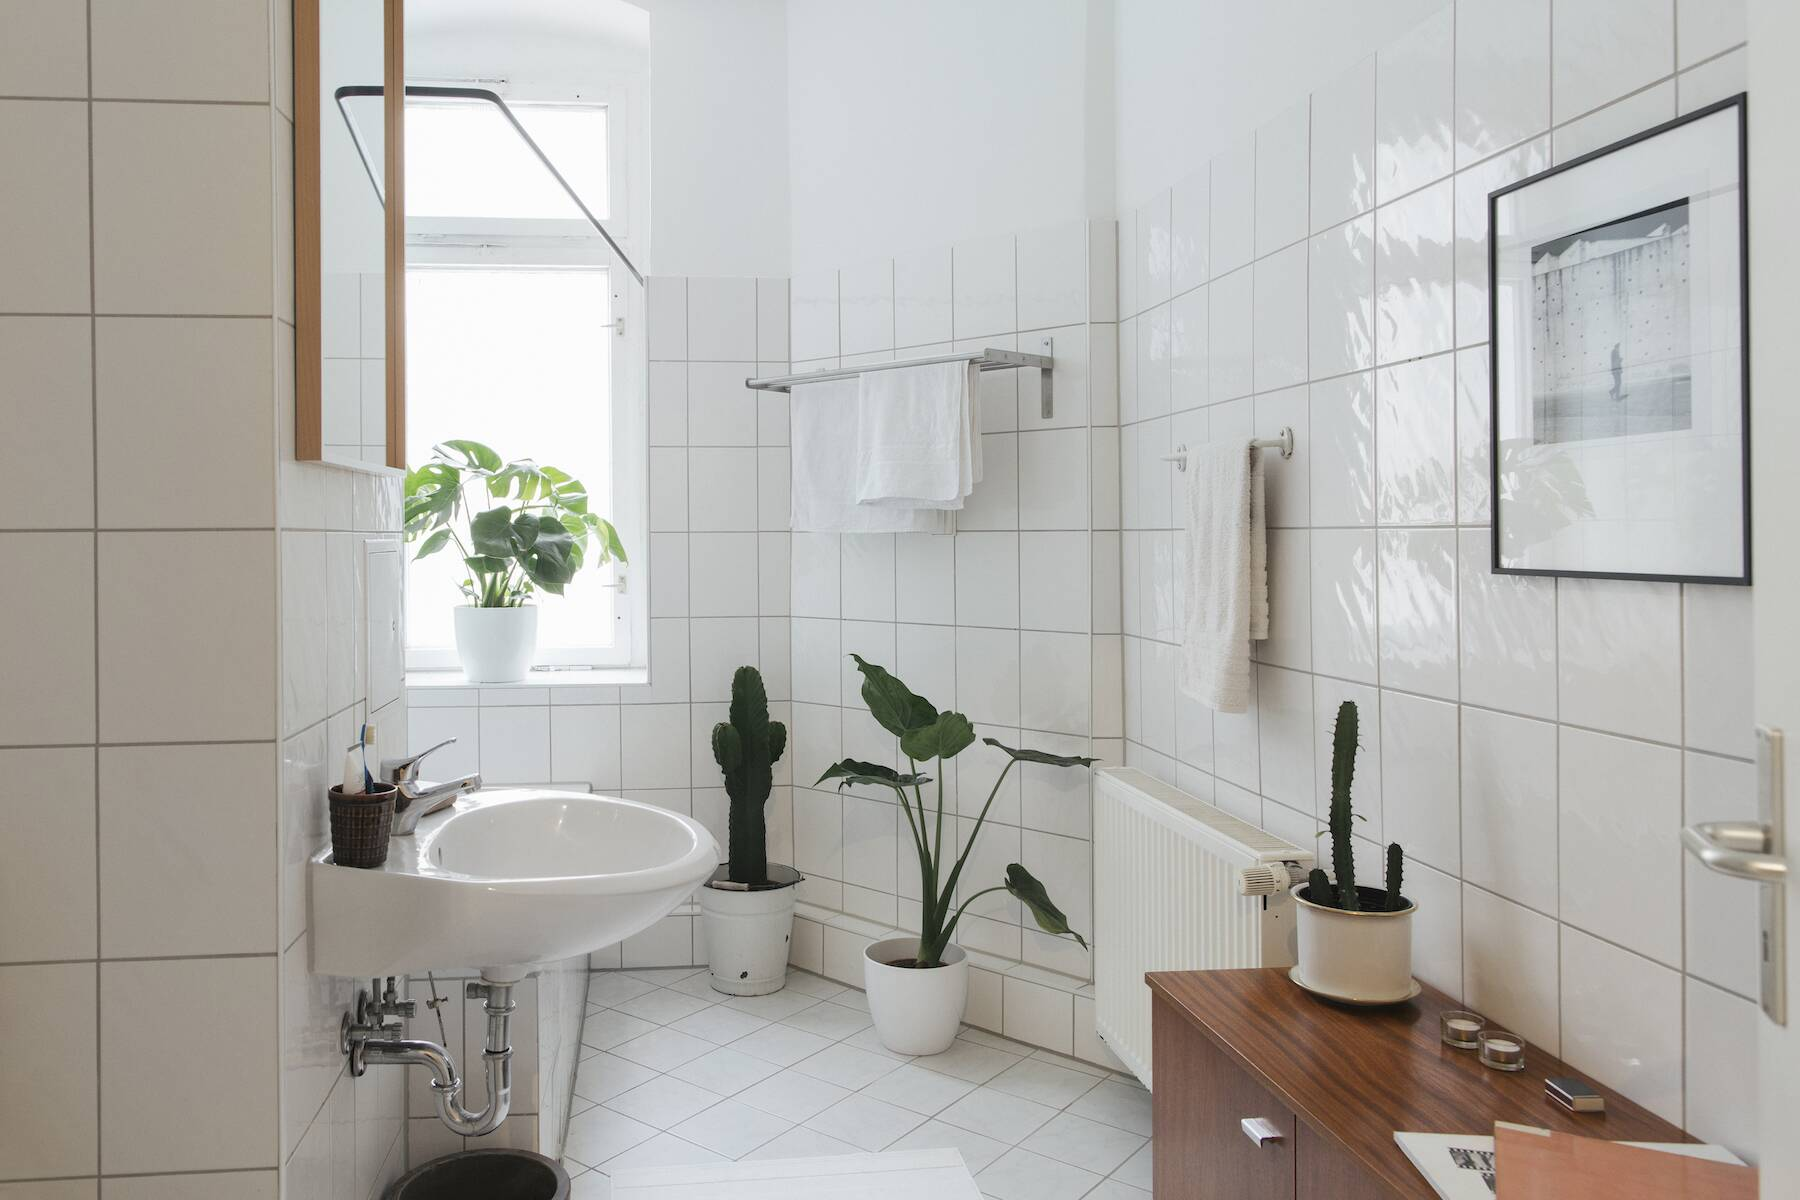 How To Clean Your Bathroom In 7 Steps